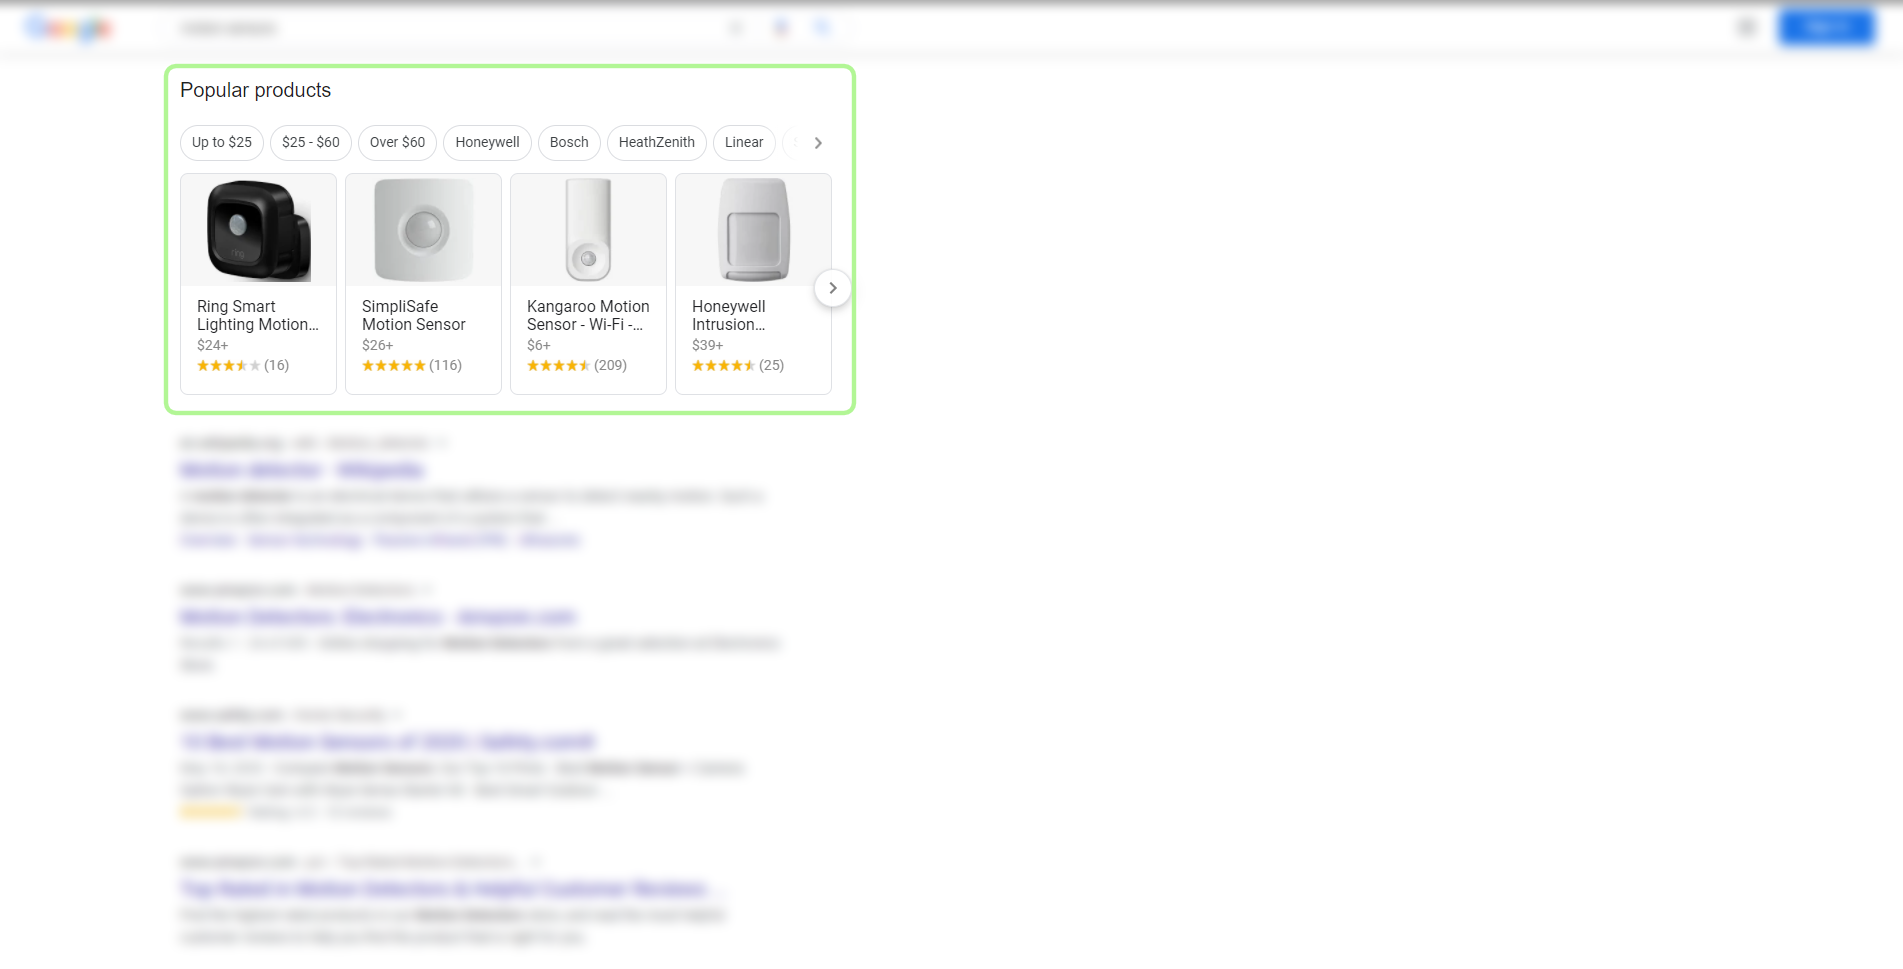 popular_products.png